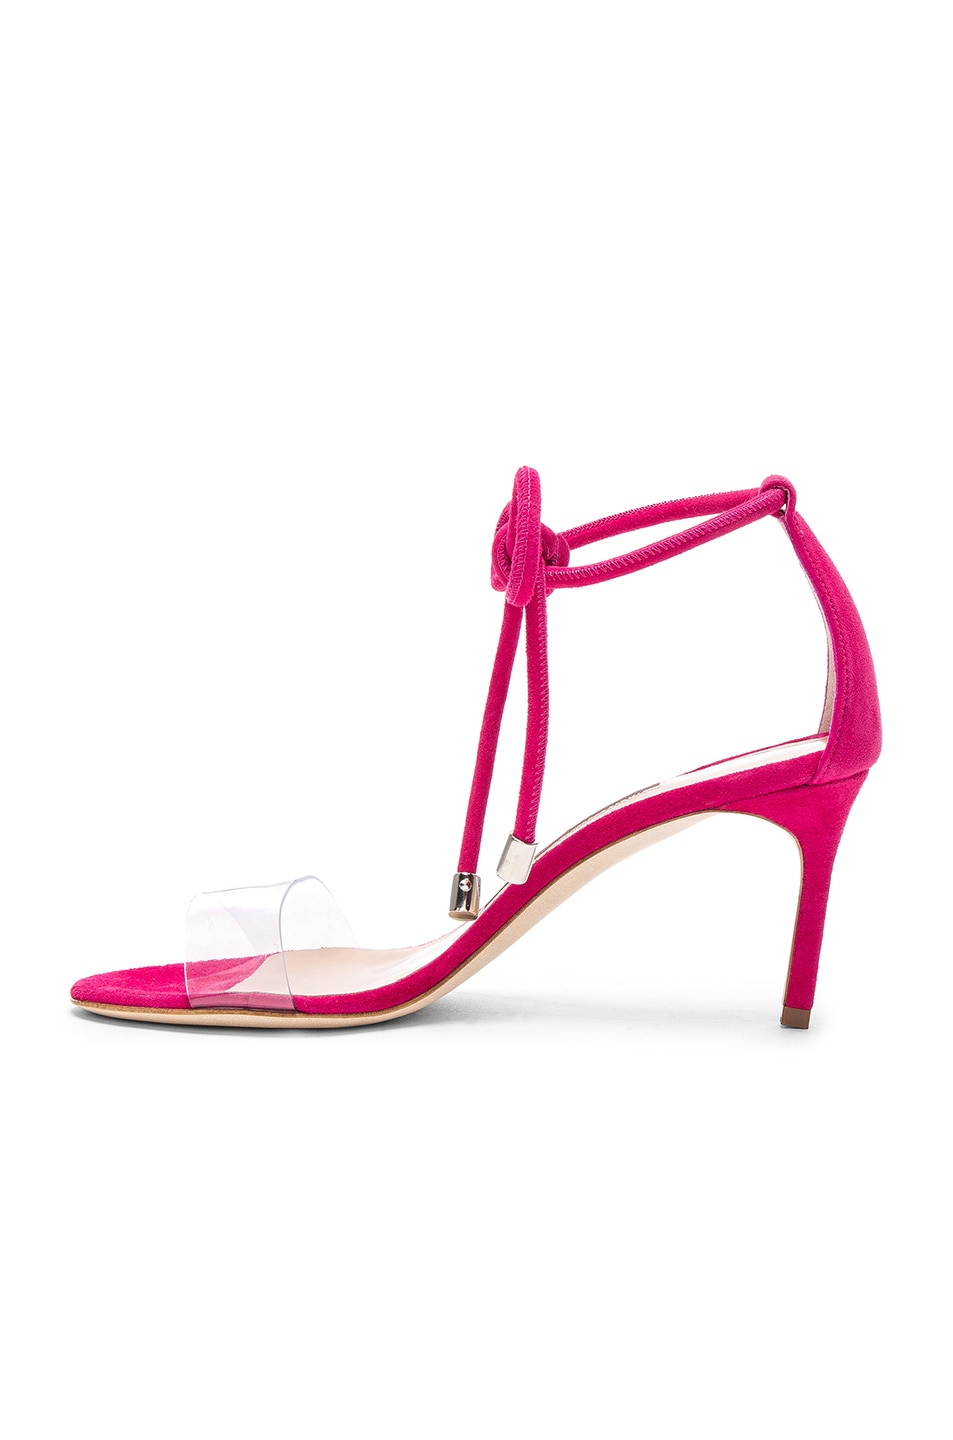 Image 5 of Manolo Blahnik Suede Estro 70 Sandals in Fuxia Suede